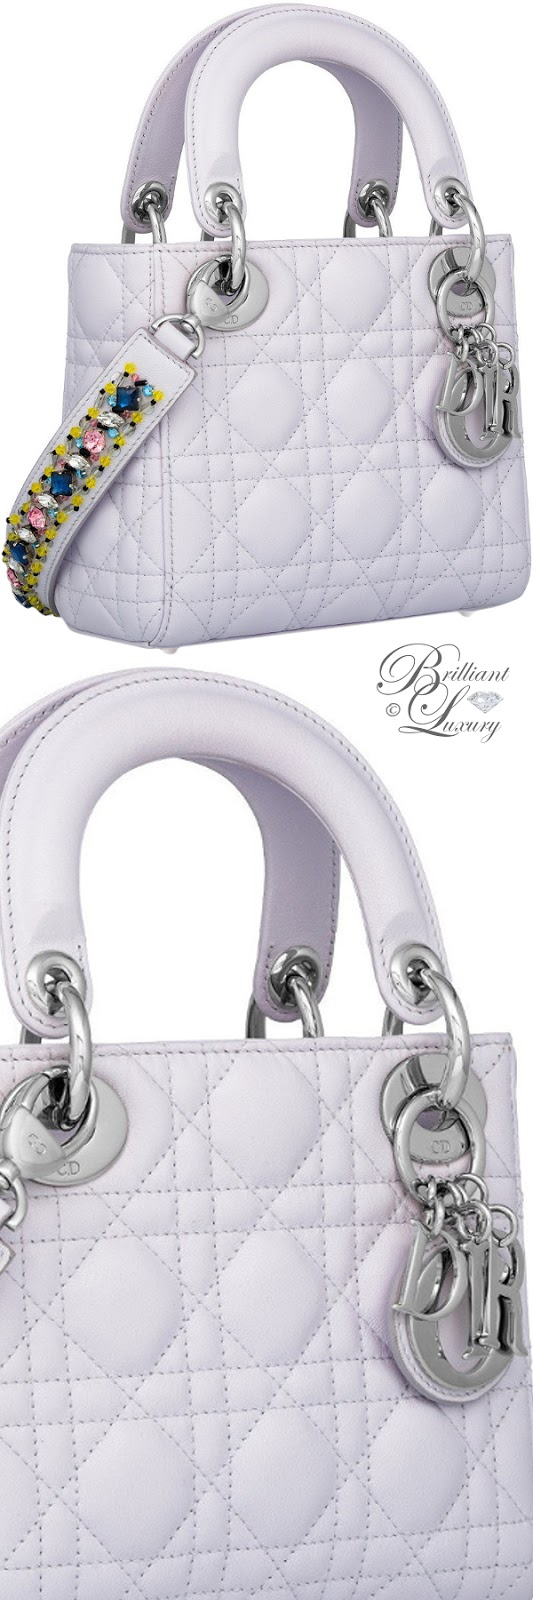 Brilliant Luxury ♦ Mini Lady Dior bag opaline white lambskin